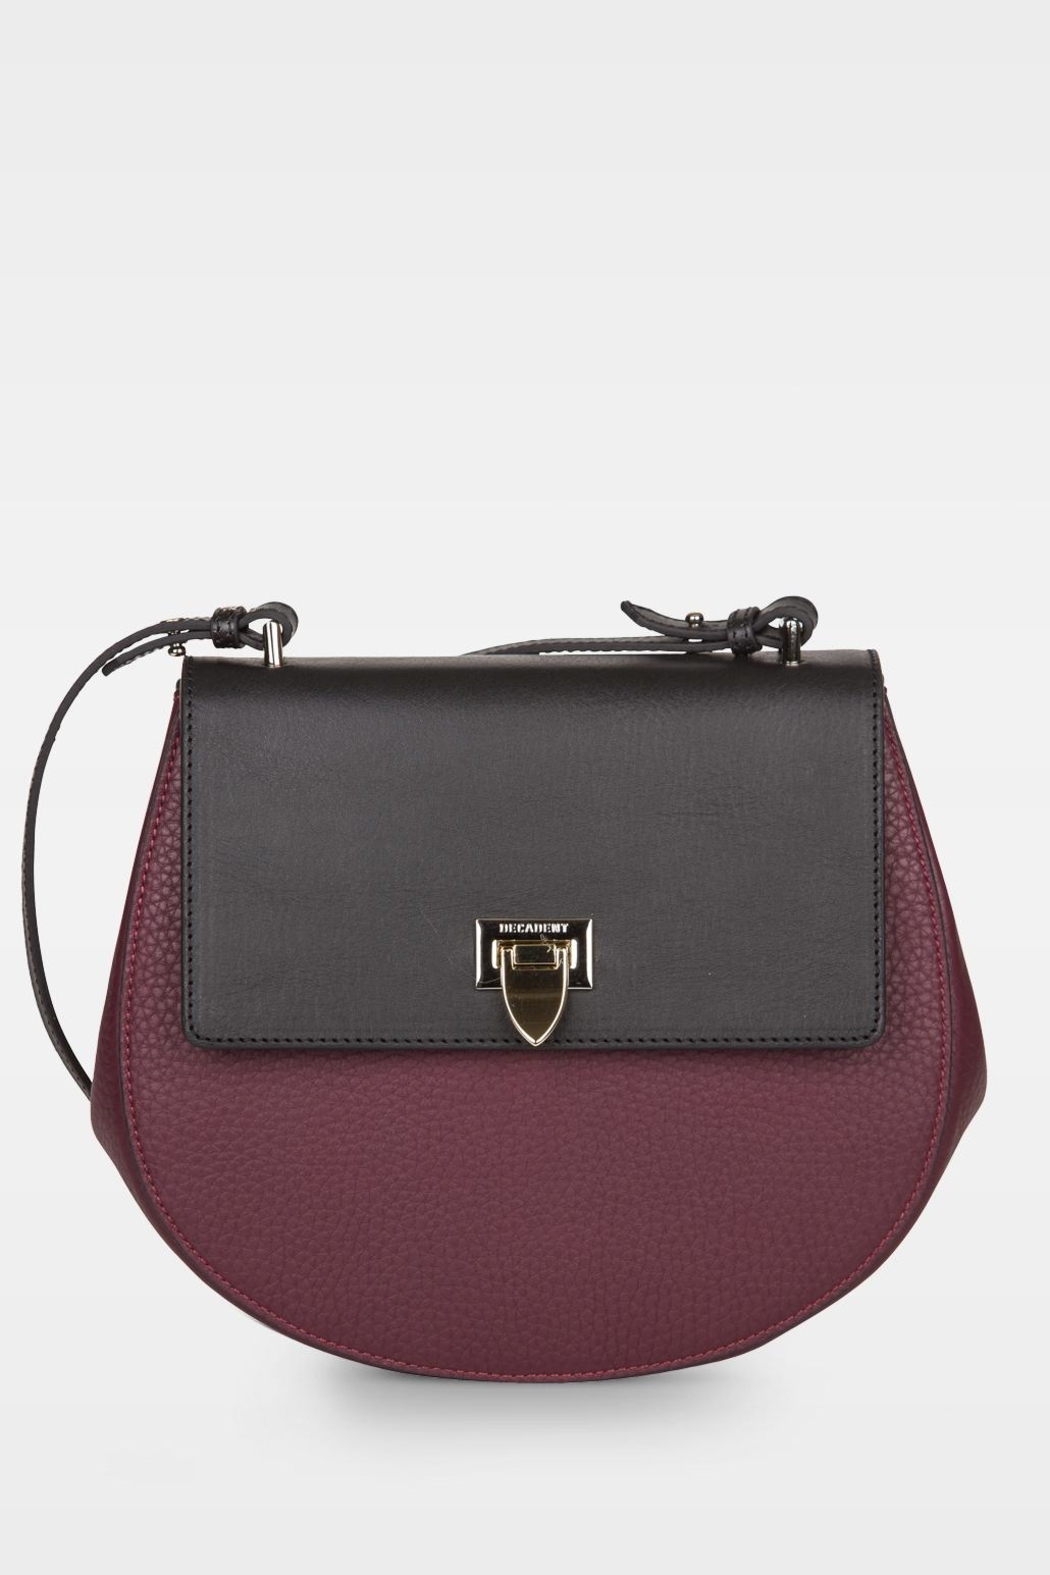 Decadent Copenhagen Aggie Medium Satchel - Front Cropped Image